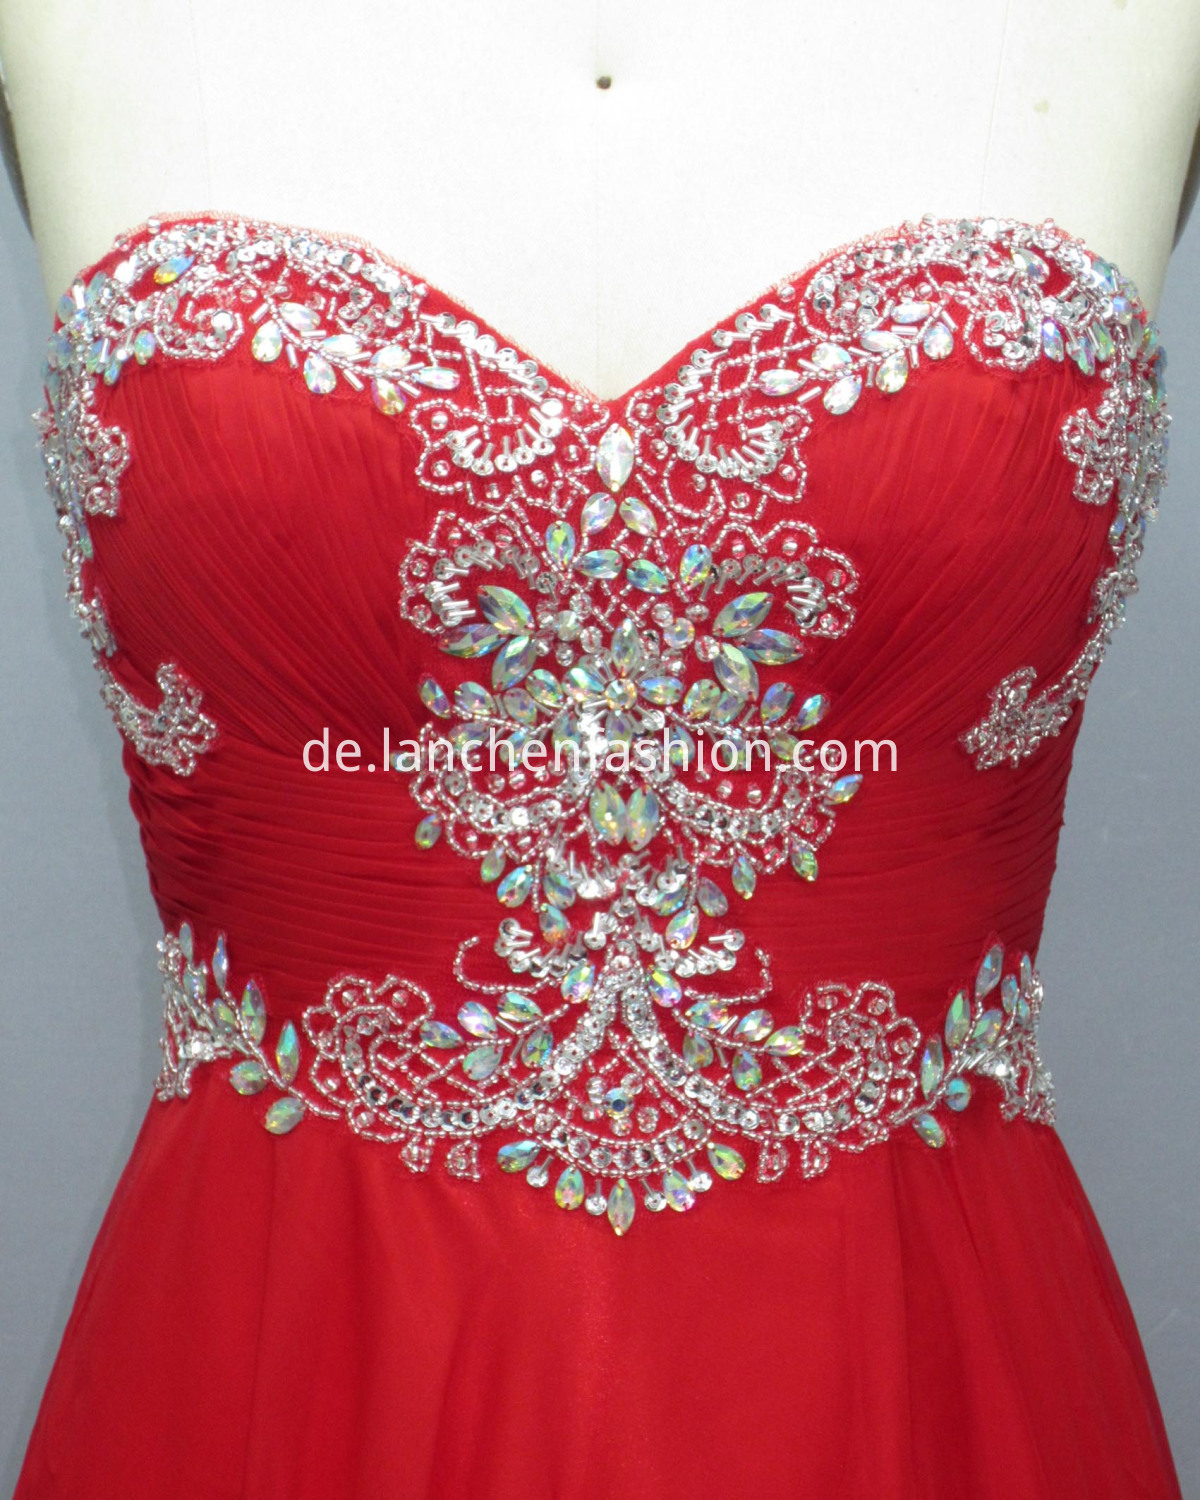 Sleeveless Prom RED